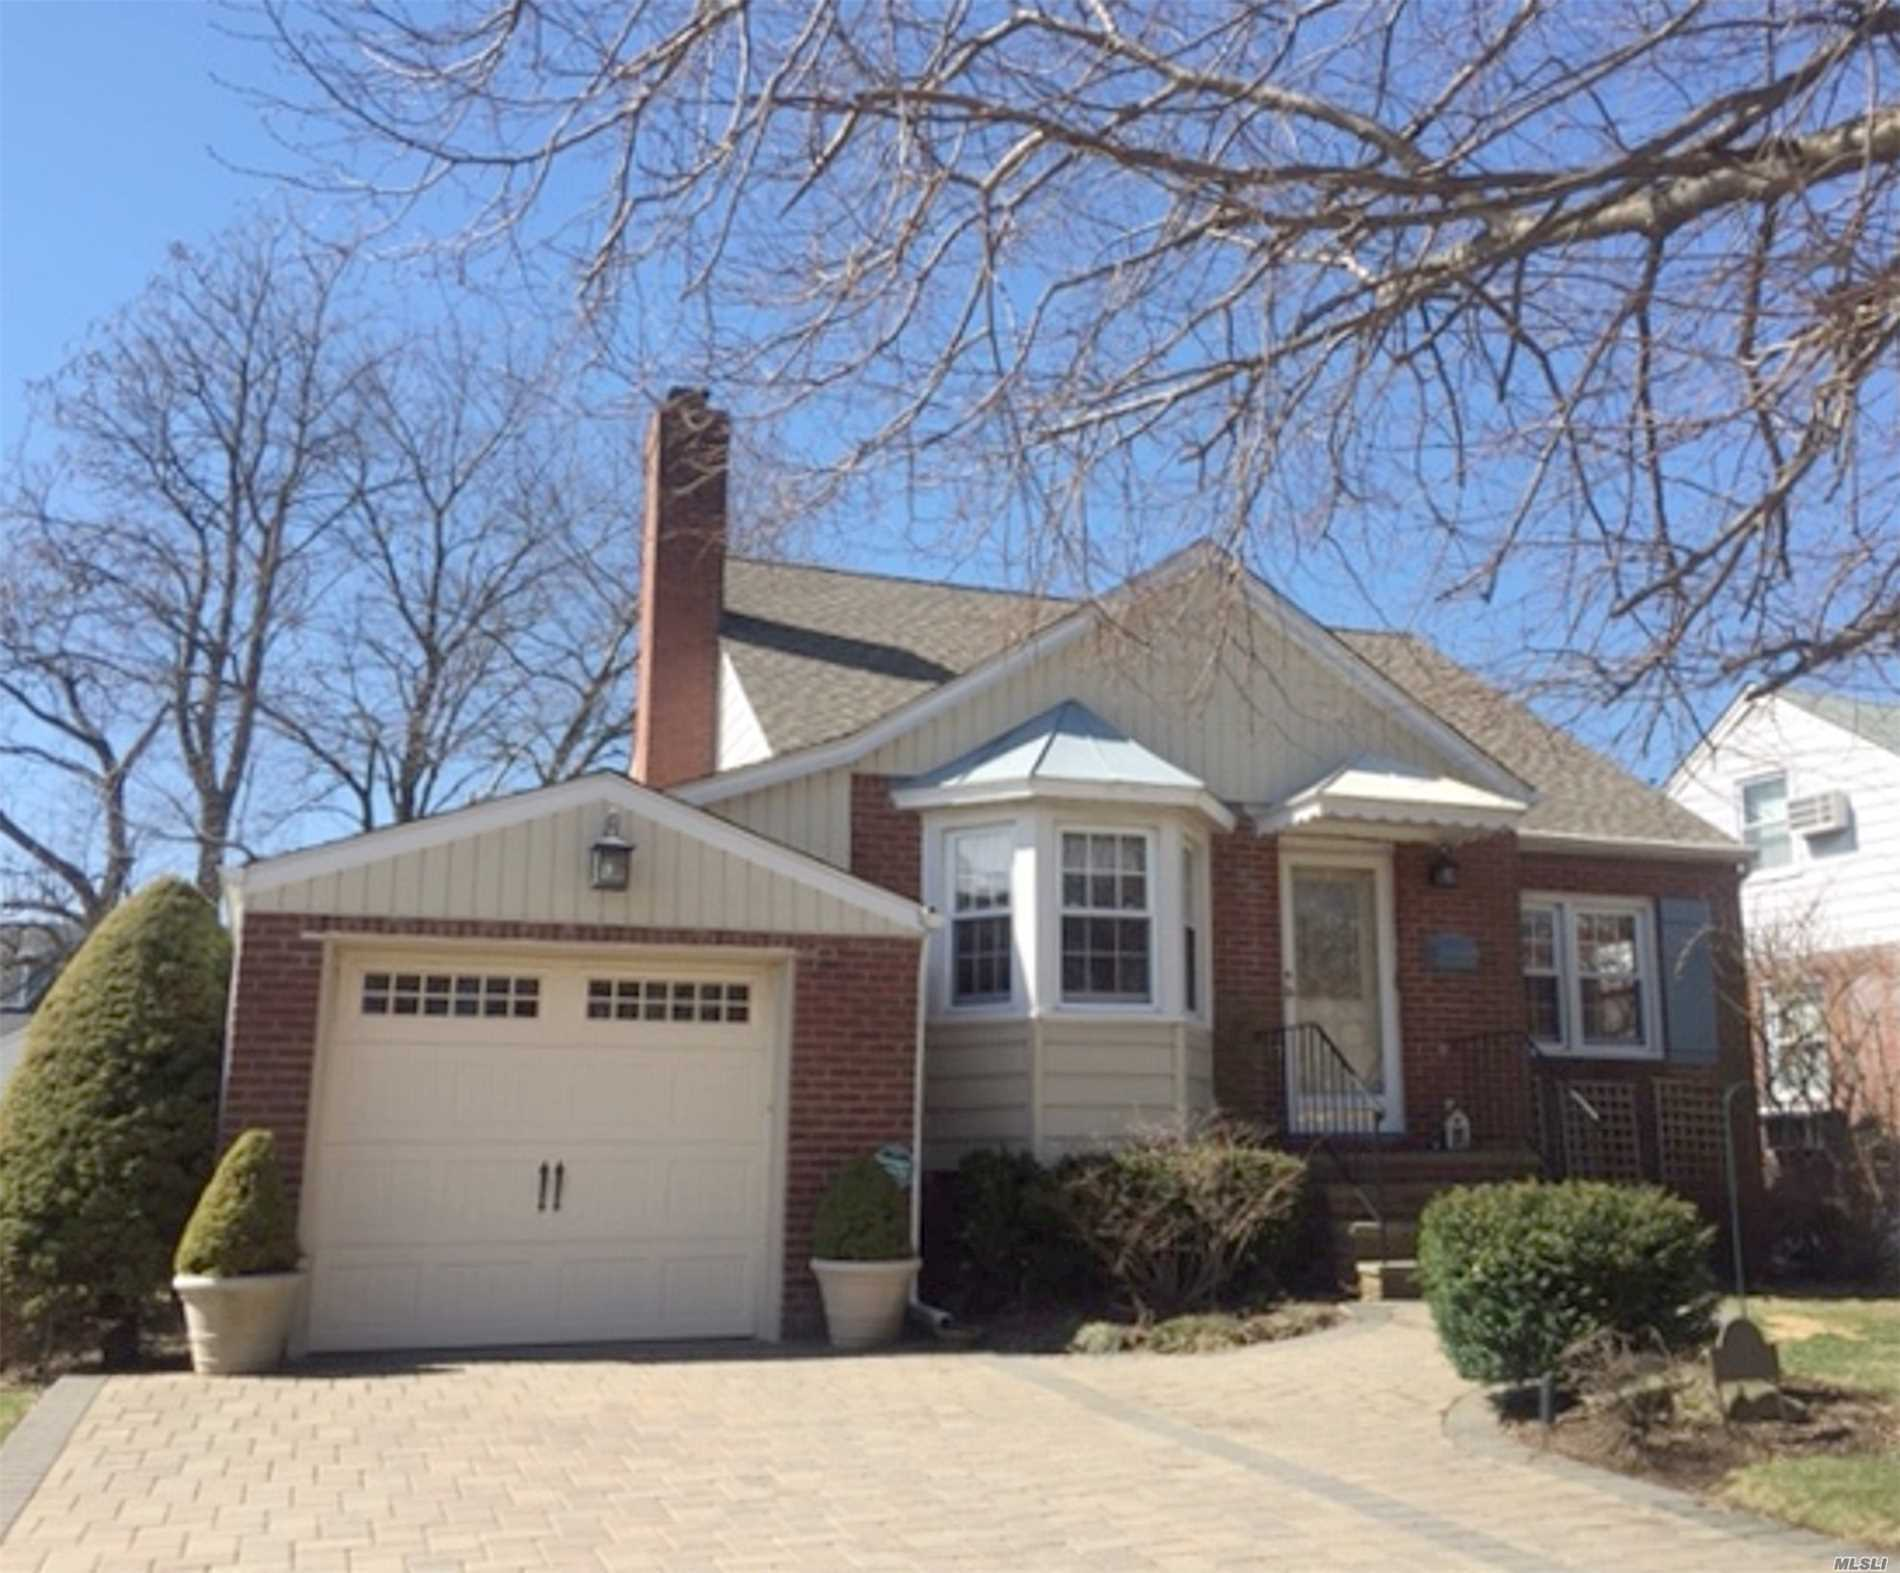 Come see this beautiful, move-in ready Exp-cape in SD#20. Large rooms, updated systems including CAC, alarm, IGS, new hot water heater, 200 amp electric, new dryer, new roof, paver driveway, granite and SS appliances in EIK, bright 4 seasons den leading to deck and professionally landscaped yard, plenty of storage and close to LIRR. Nothing to do but unpack and enjoy this true home!